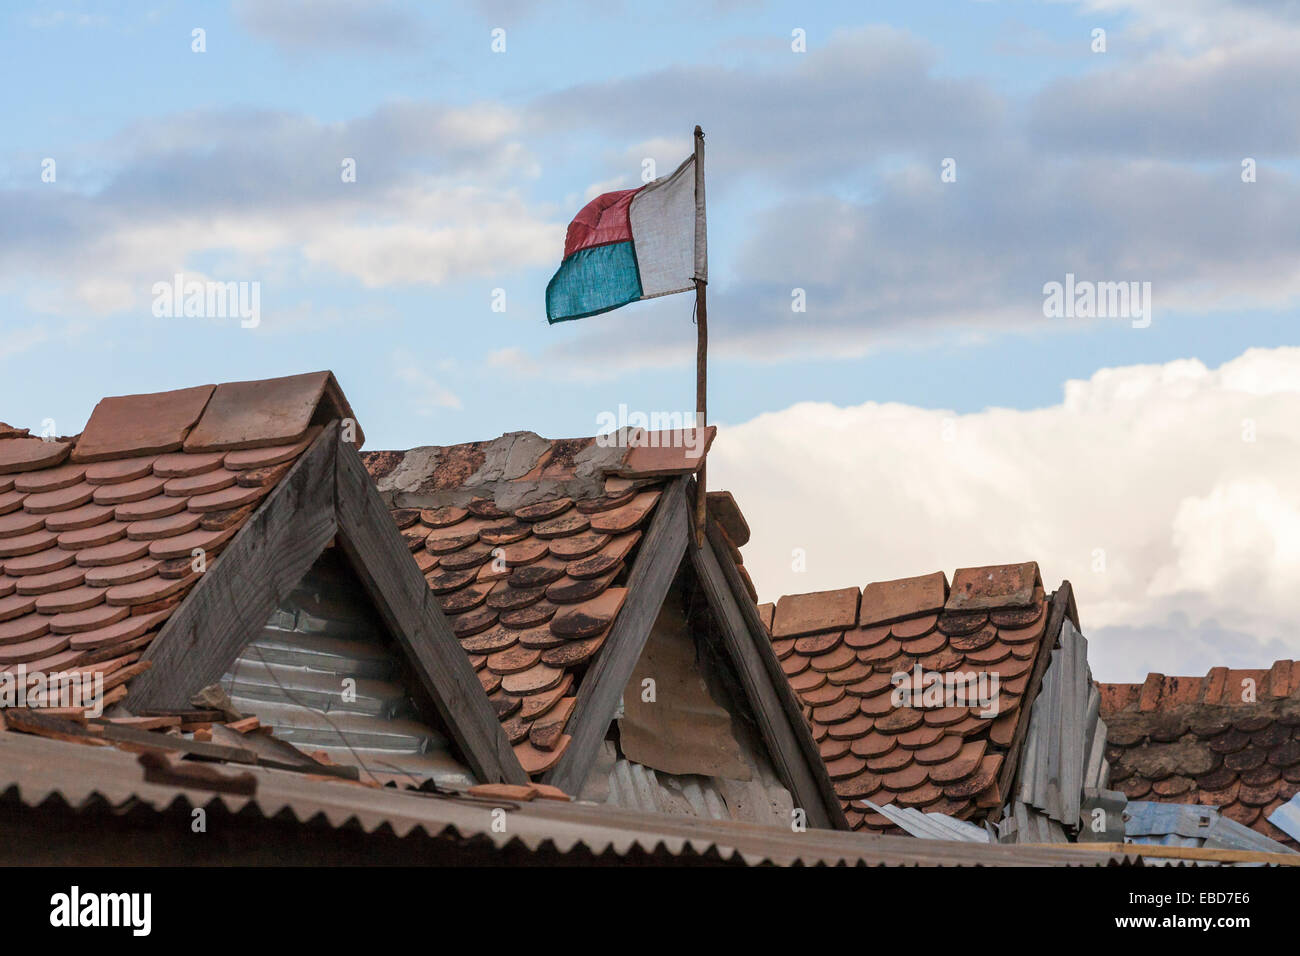 Madagascan national flag flying above the tiled roofs of buildings in Antananarivo, or Tana, capital city of Madagascar - Stock Image